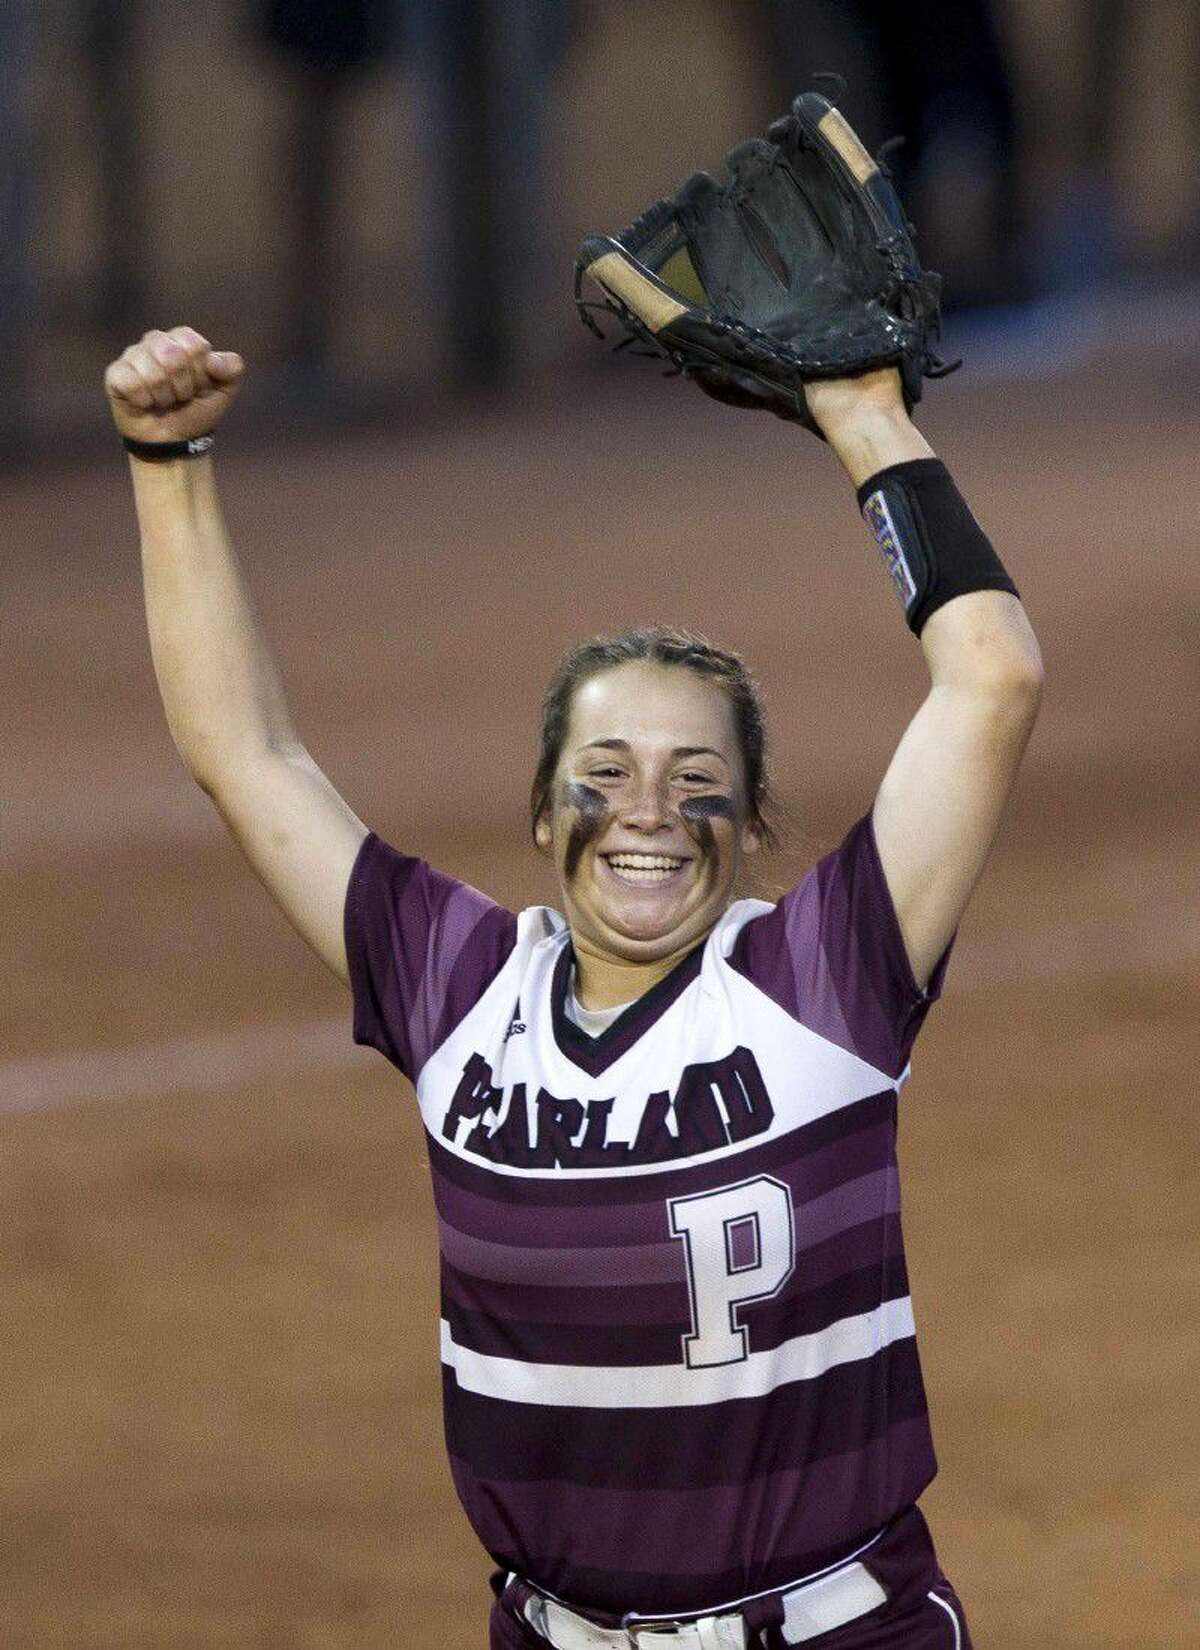 Pearland' third baseman Natalie Romeo celebrates after winning a 6A semifinal game at the UIL State Softball Championships Friday in Austin. Go to HCNpics.com to view more photos from the game.